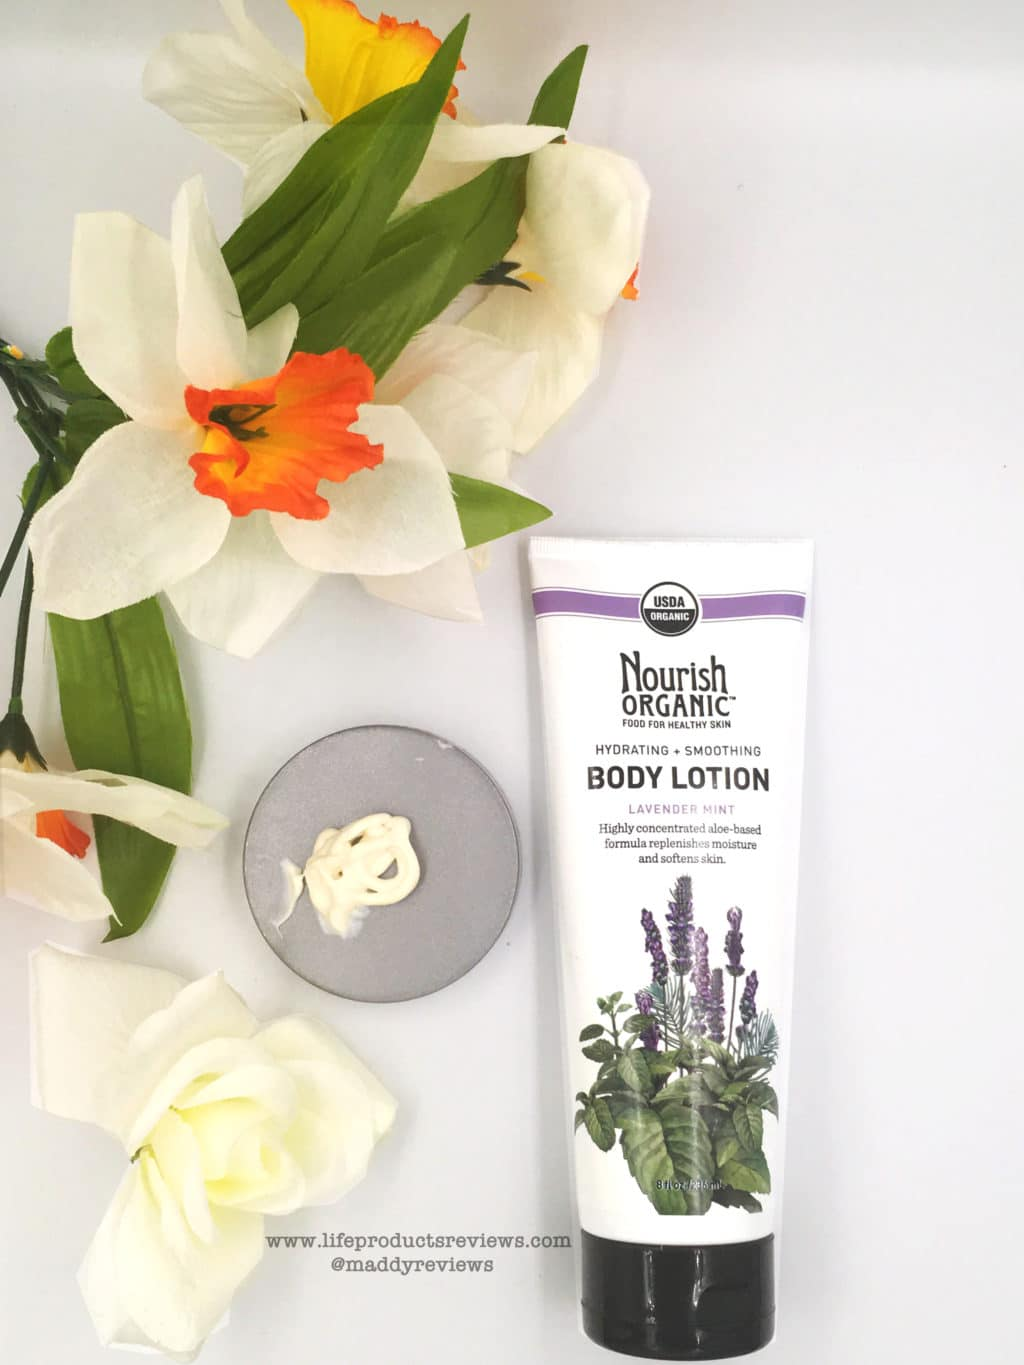 Nourish Organic Lavender Mint Body Lotion demonstration consistency look feel sensitive skin all skin types